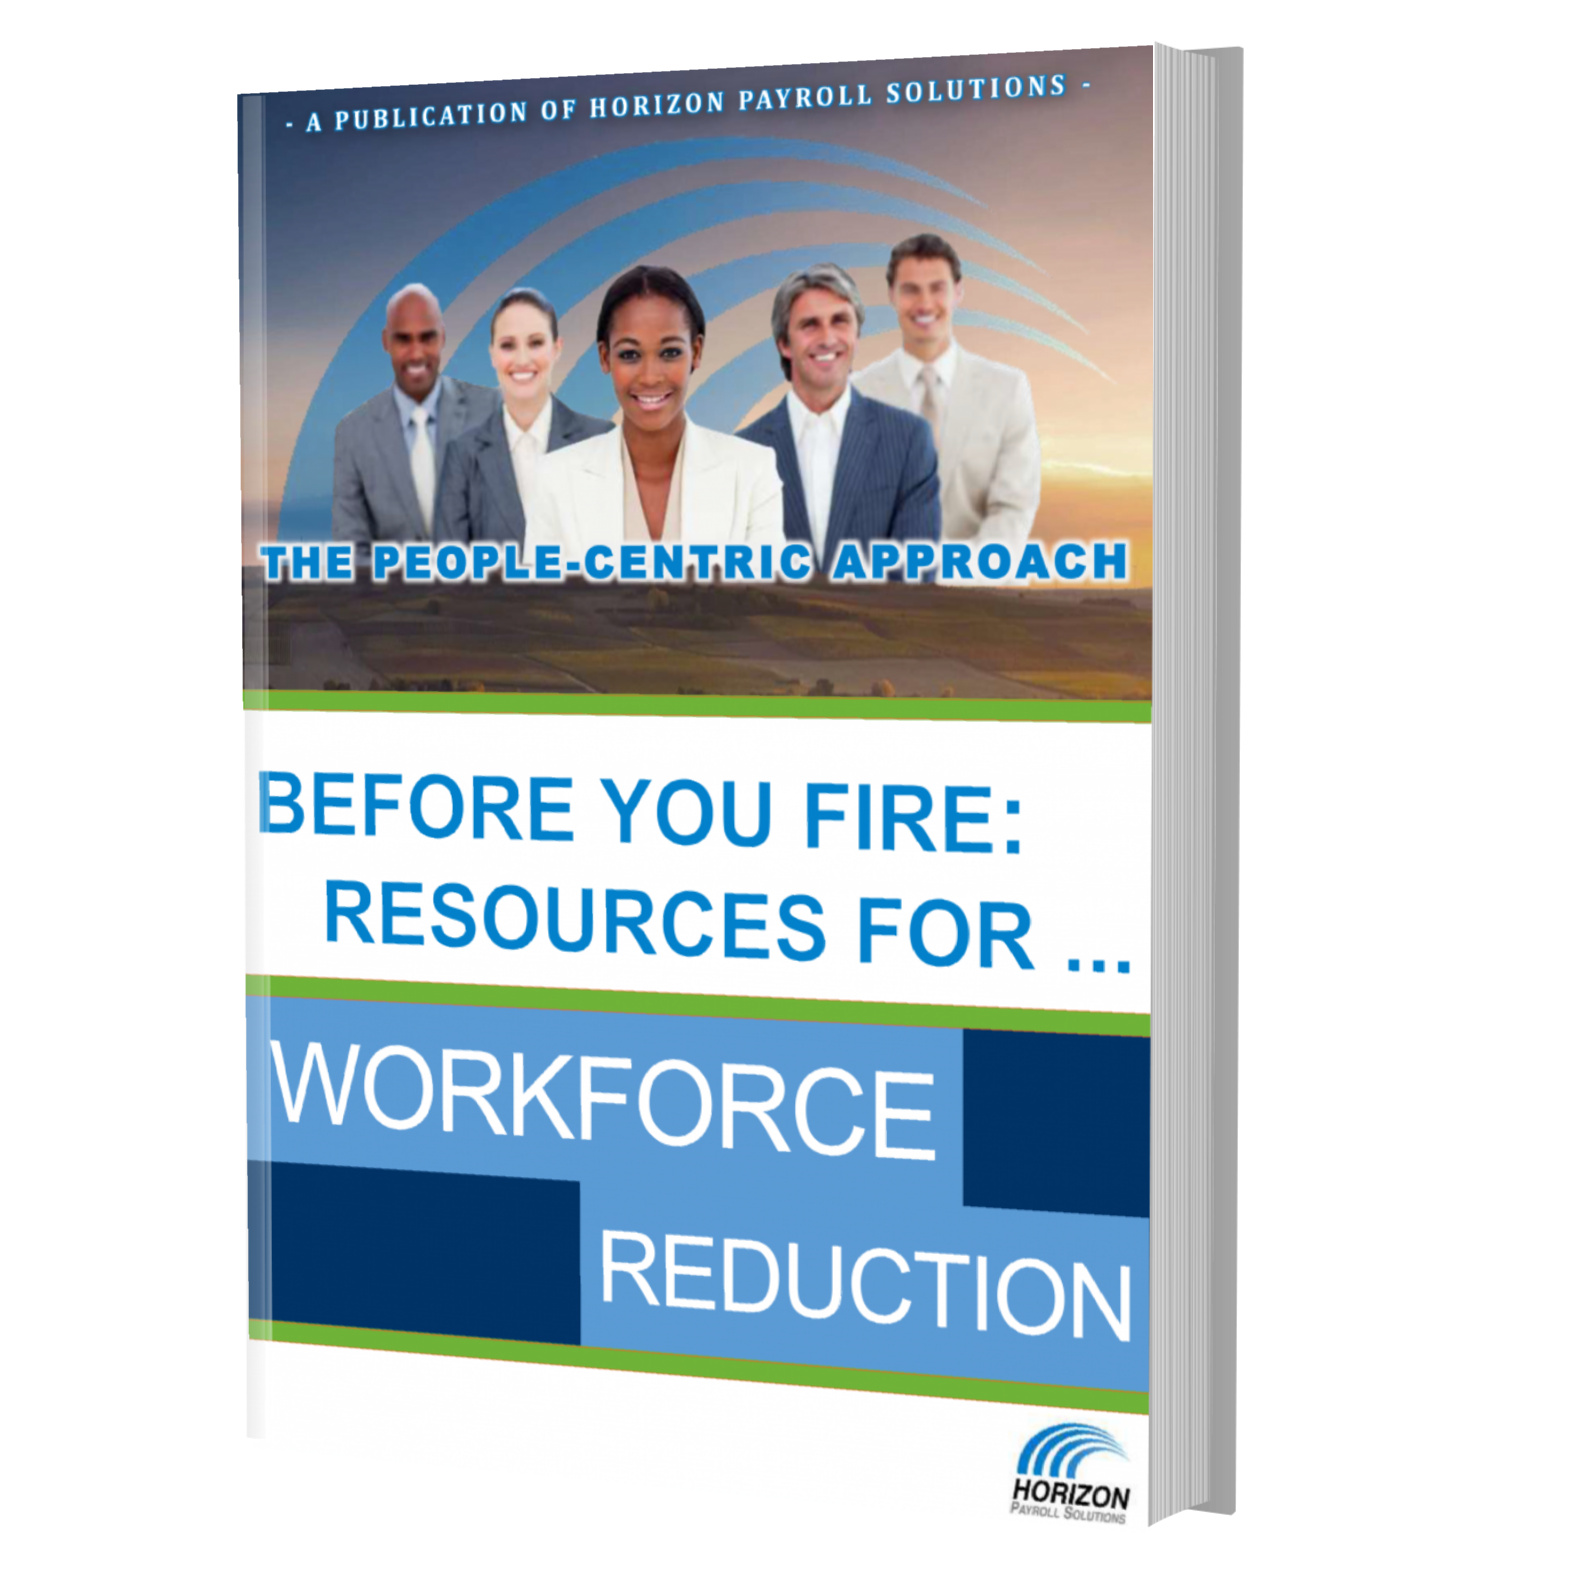 Horizon Payroll Solutions Workforce Reduction Ebook November 2017-cover.png